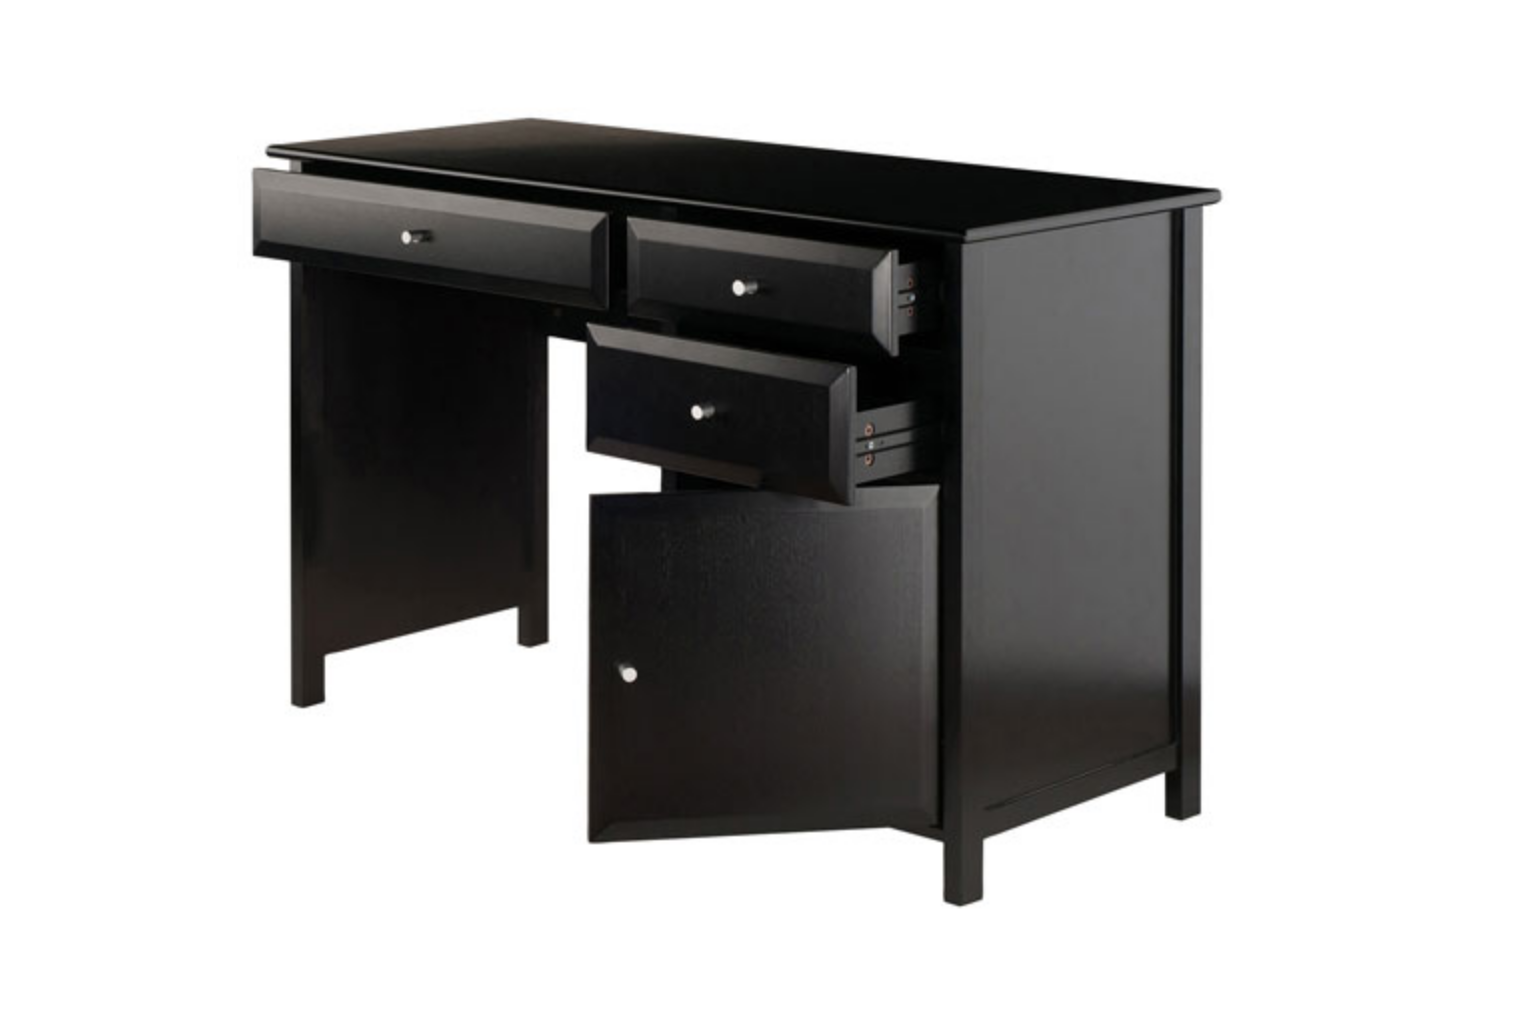 office furniture office supplies Best Buy